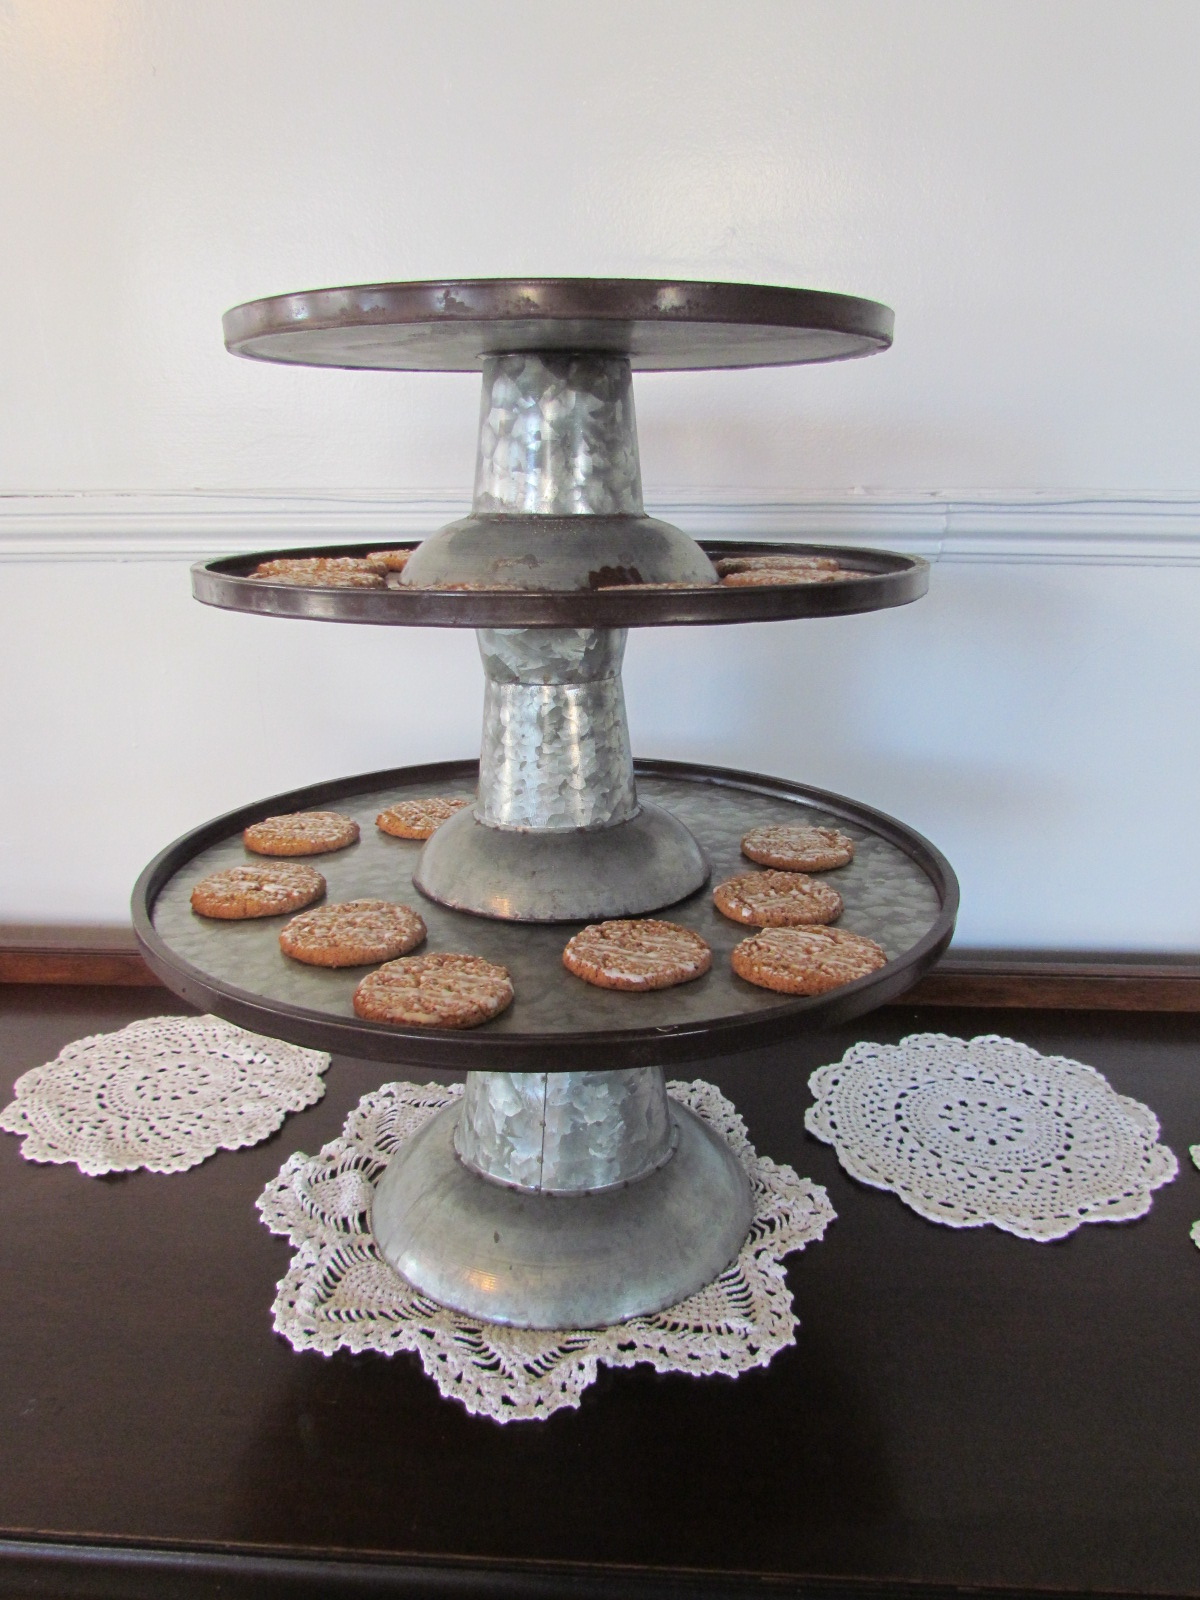 Zinc 3-Tier Cake Stand $18 / Day OR Small $3 / Day Medium $6 / Day Large $9 / Day